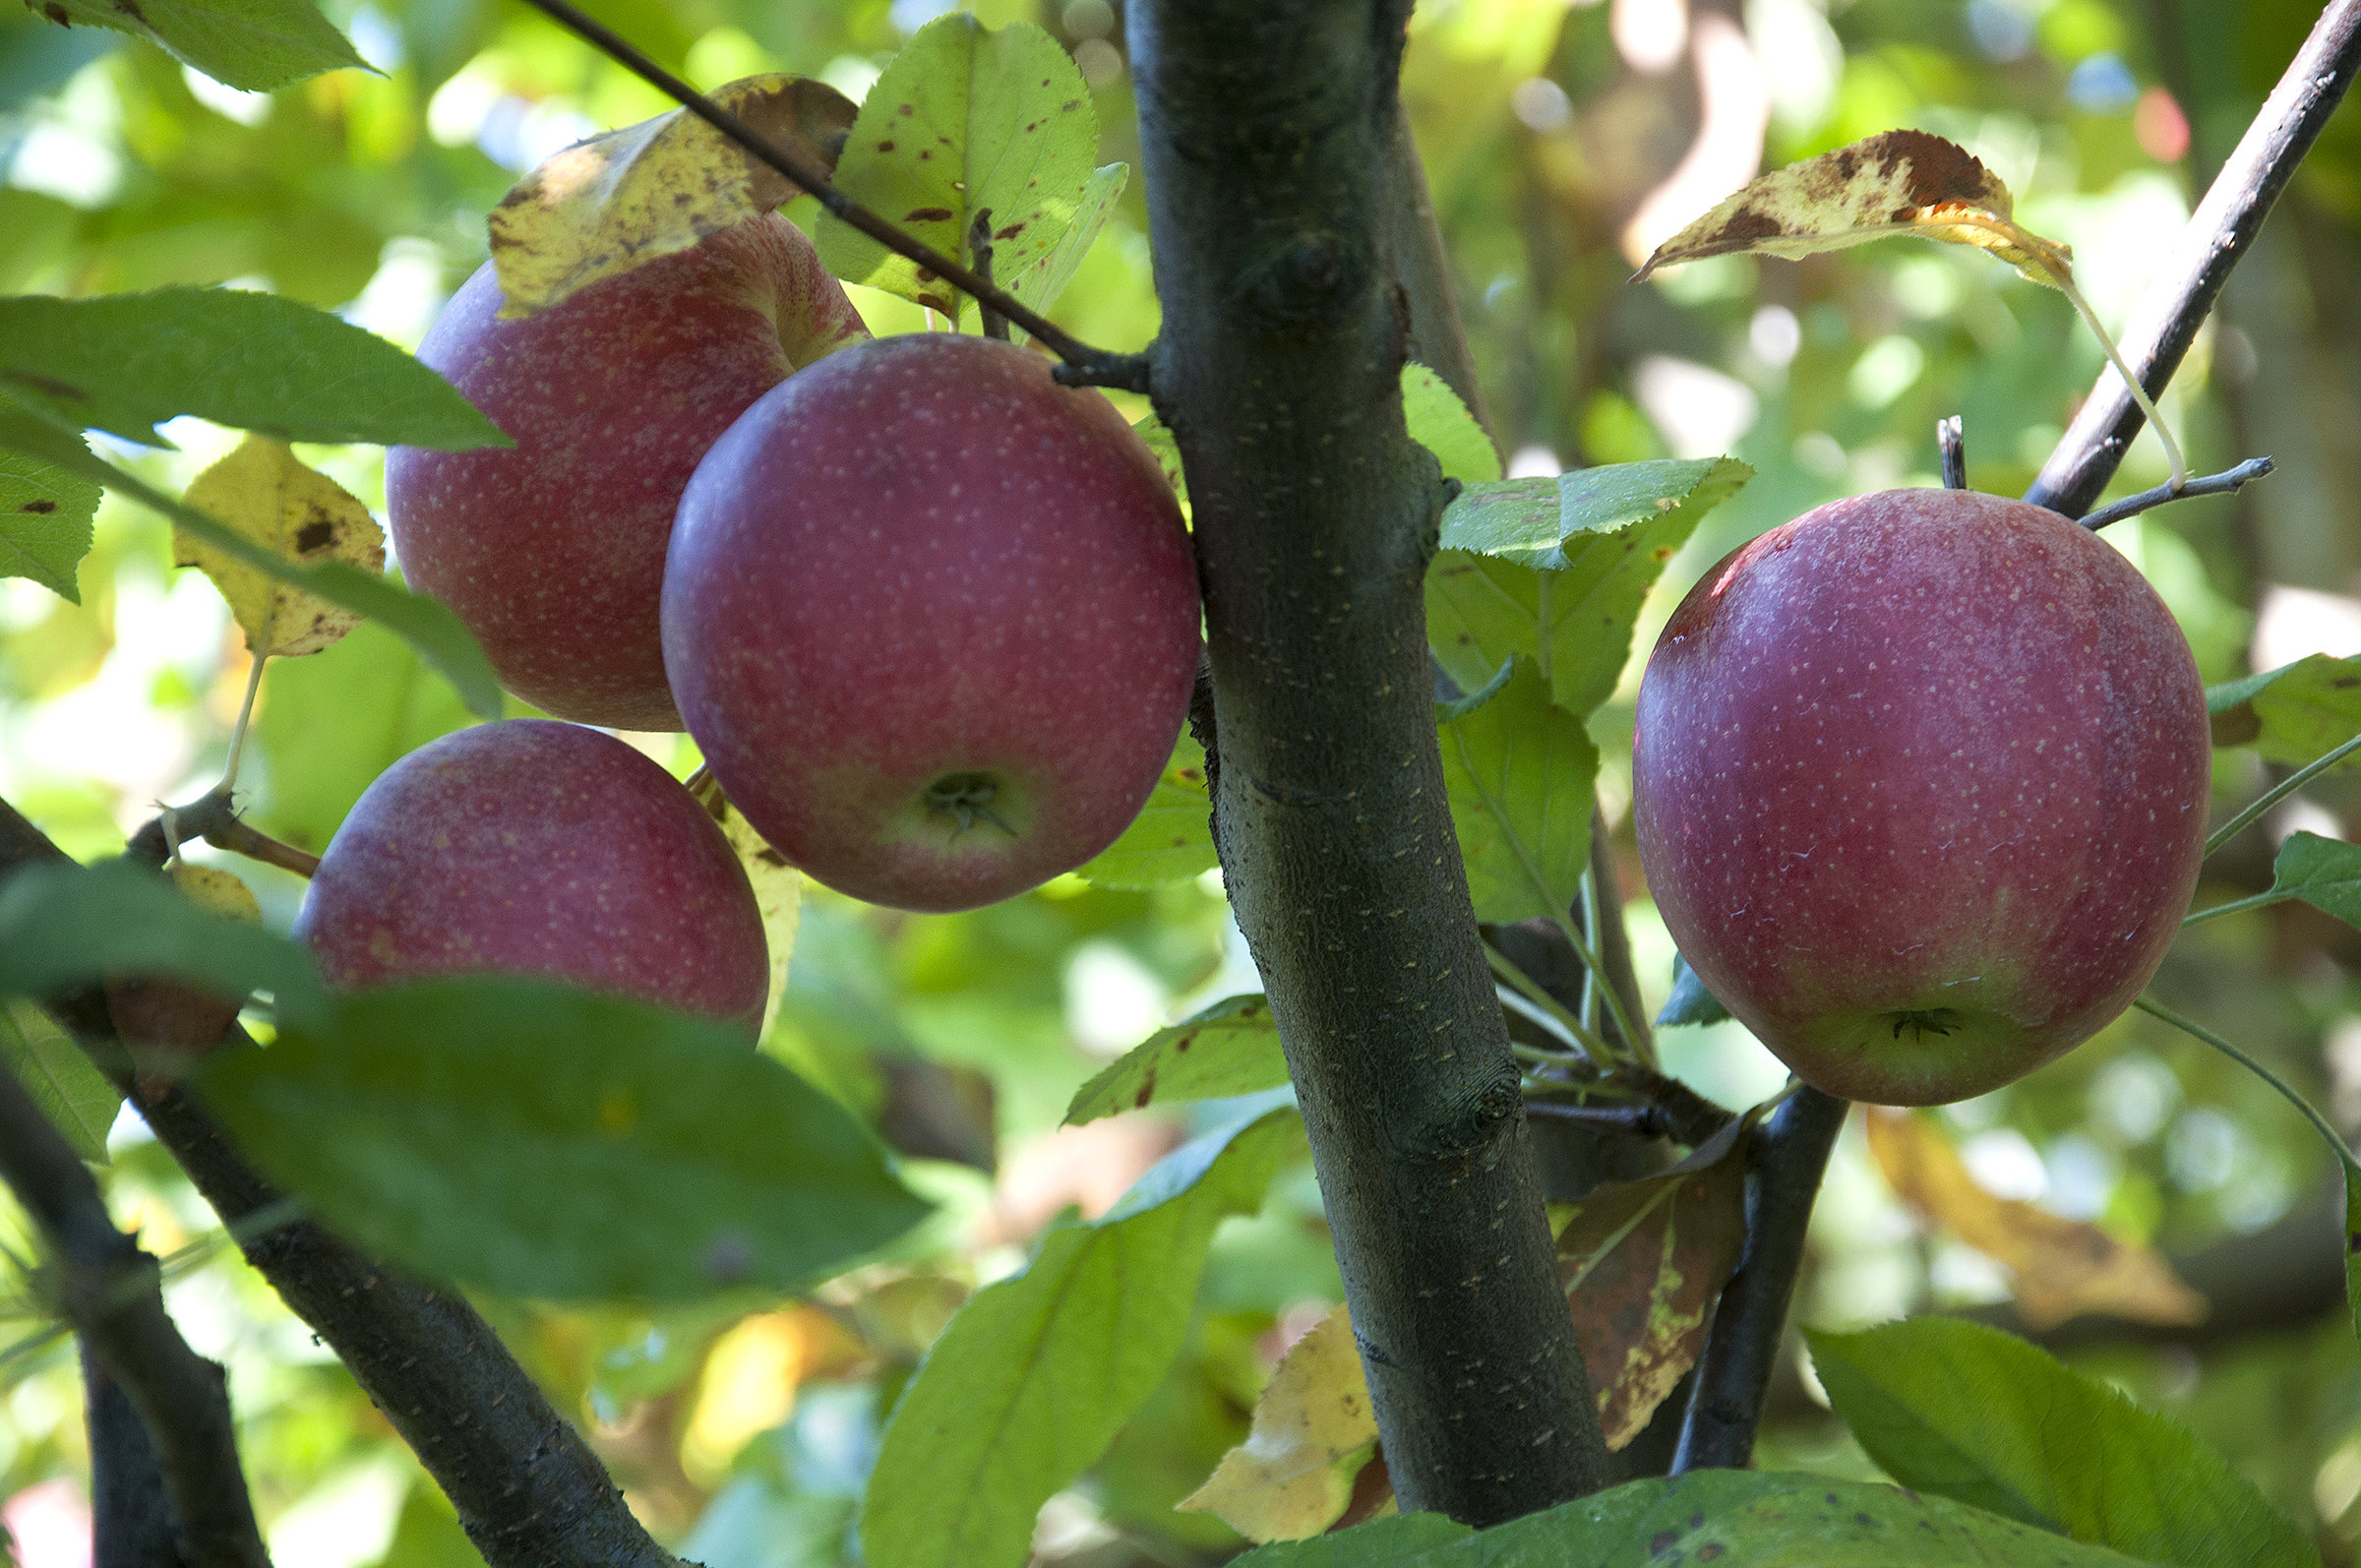 Apple trees bear more fruit when surrounded by good neighbors